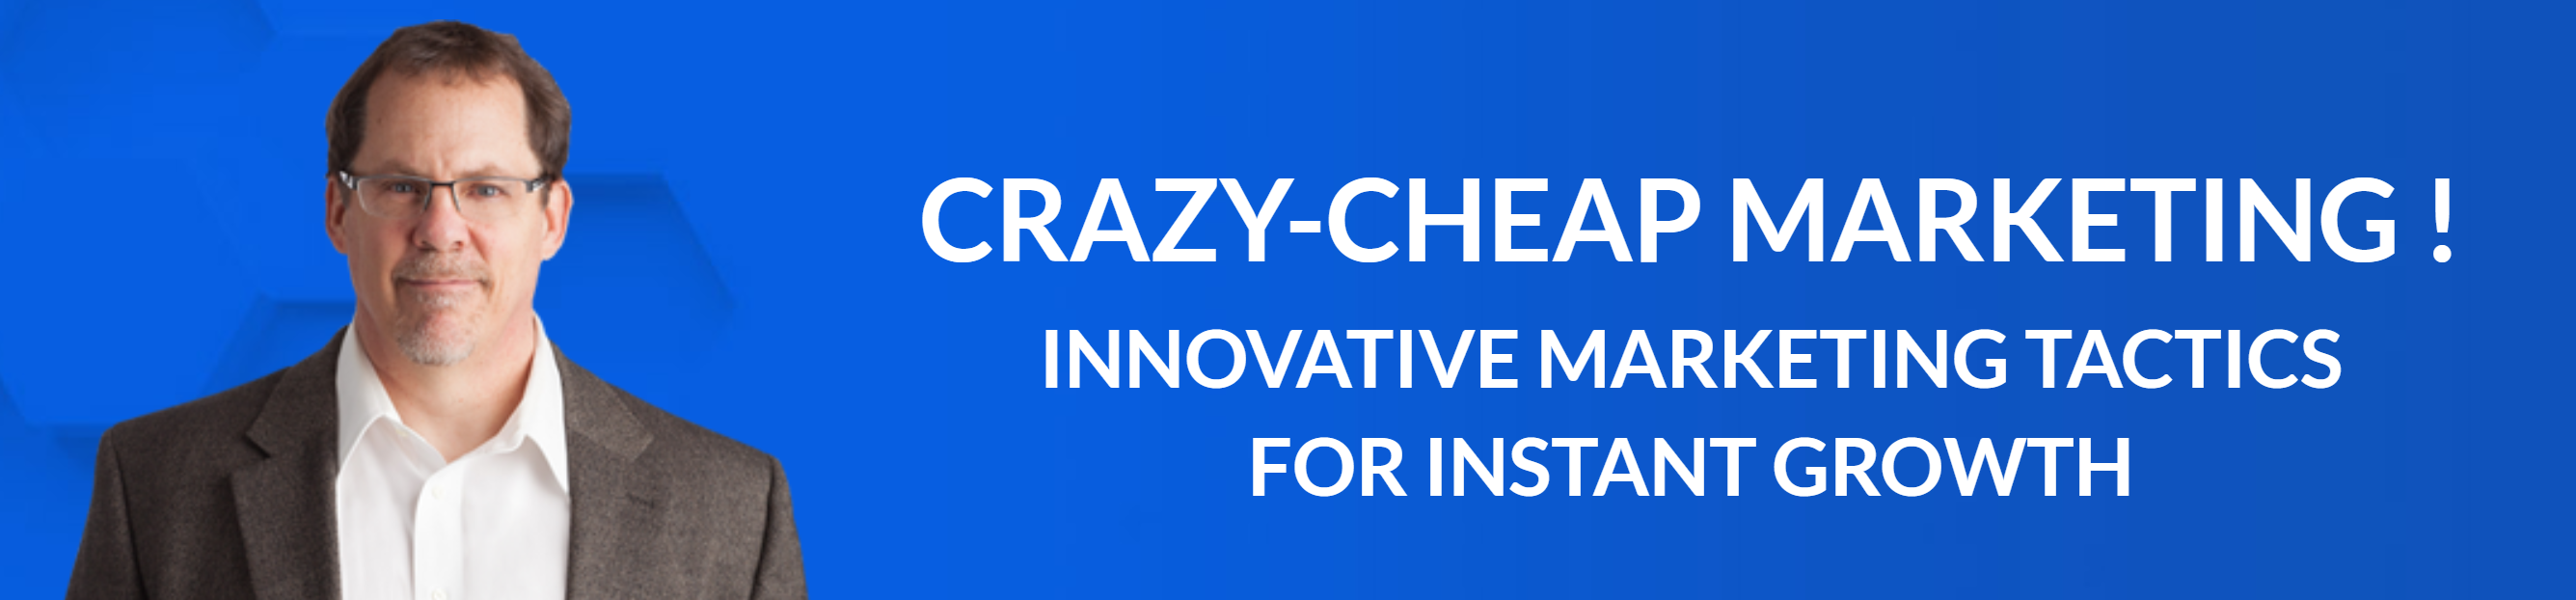 Smith.ai's Maddy Martin Featured on Crazy-Cheap Marketing Podcast with Andy Curry